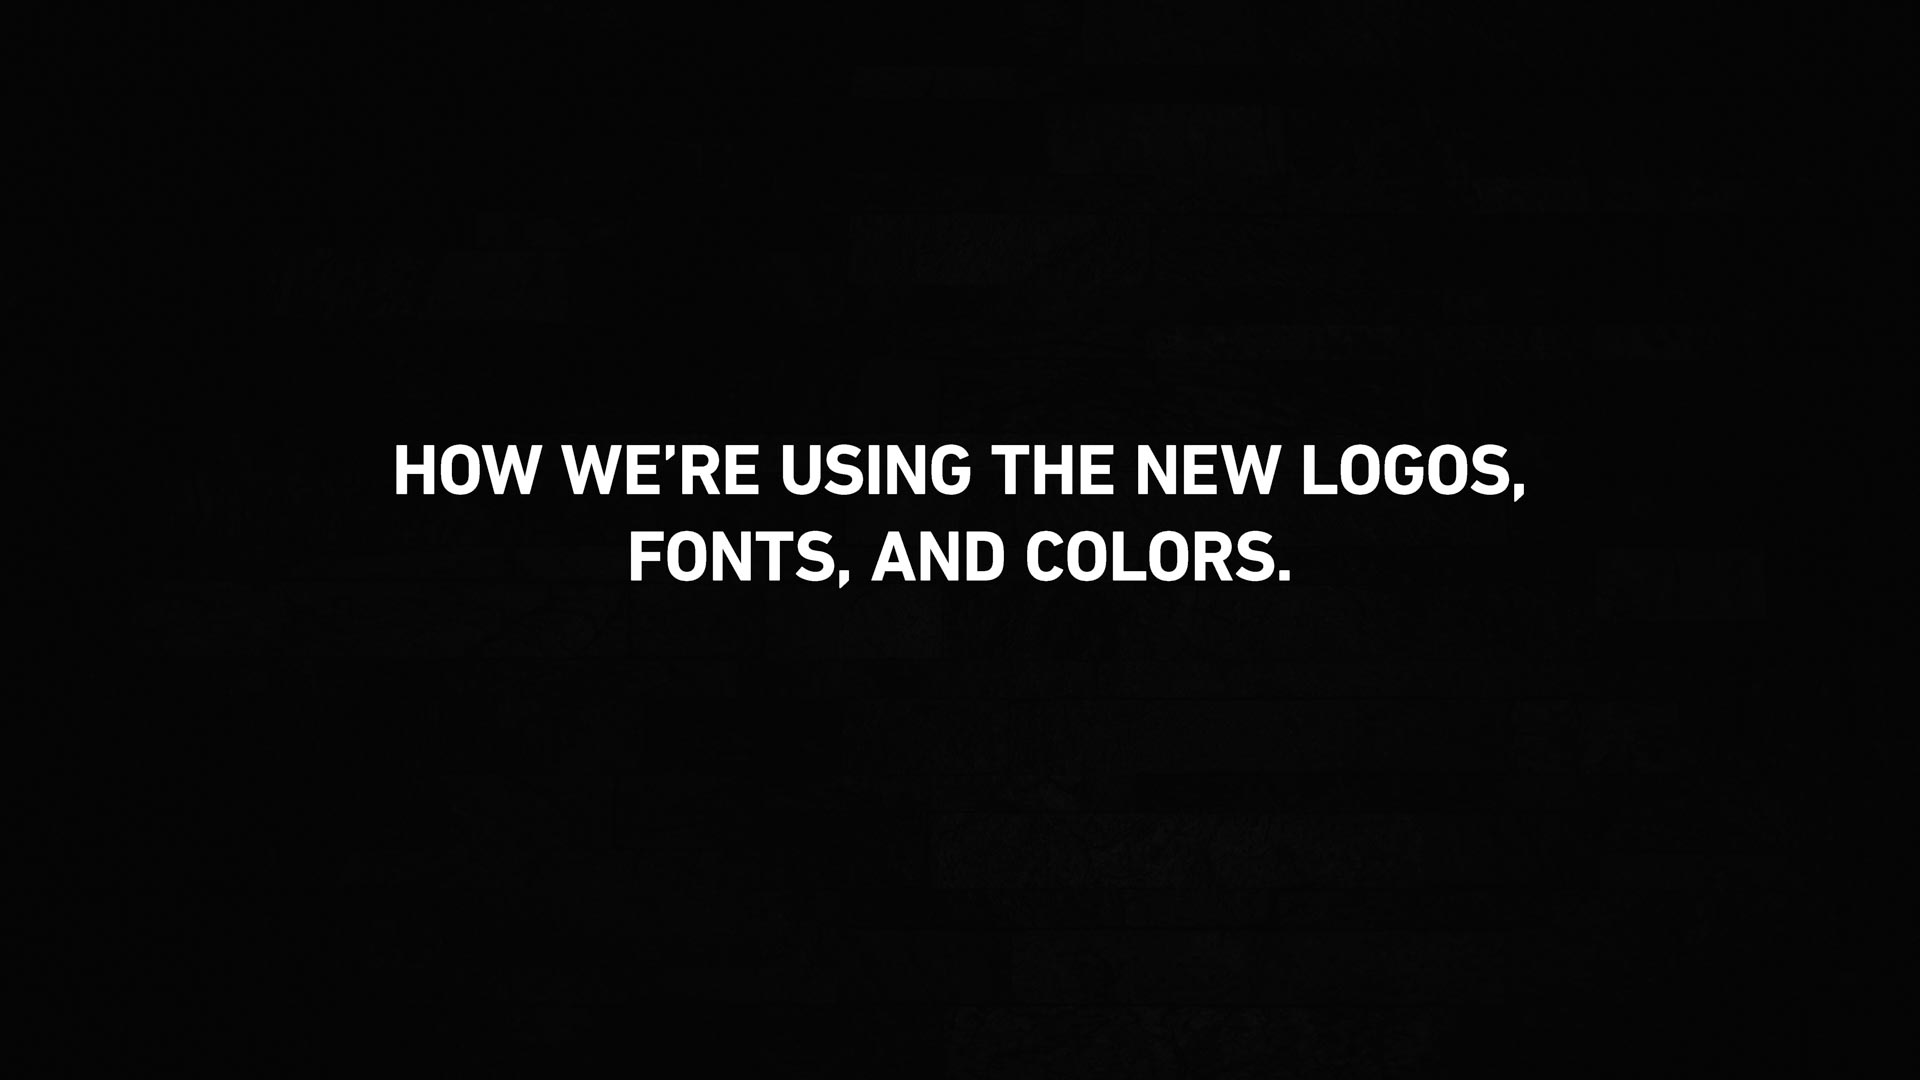 How We're Using the New Logos, Fonts, and Colors